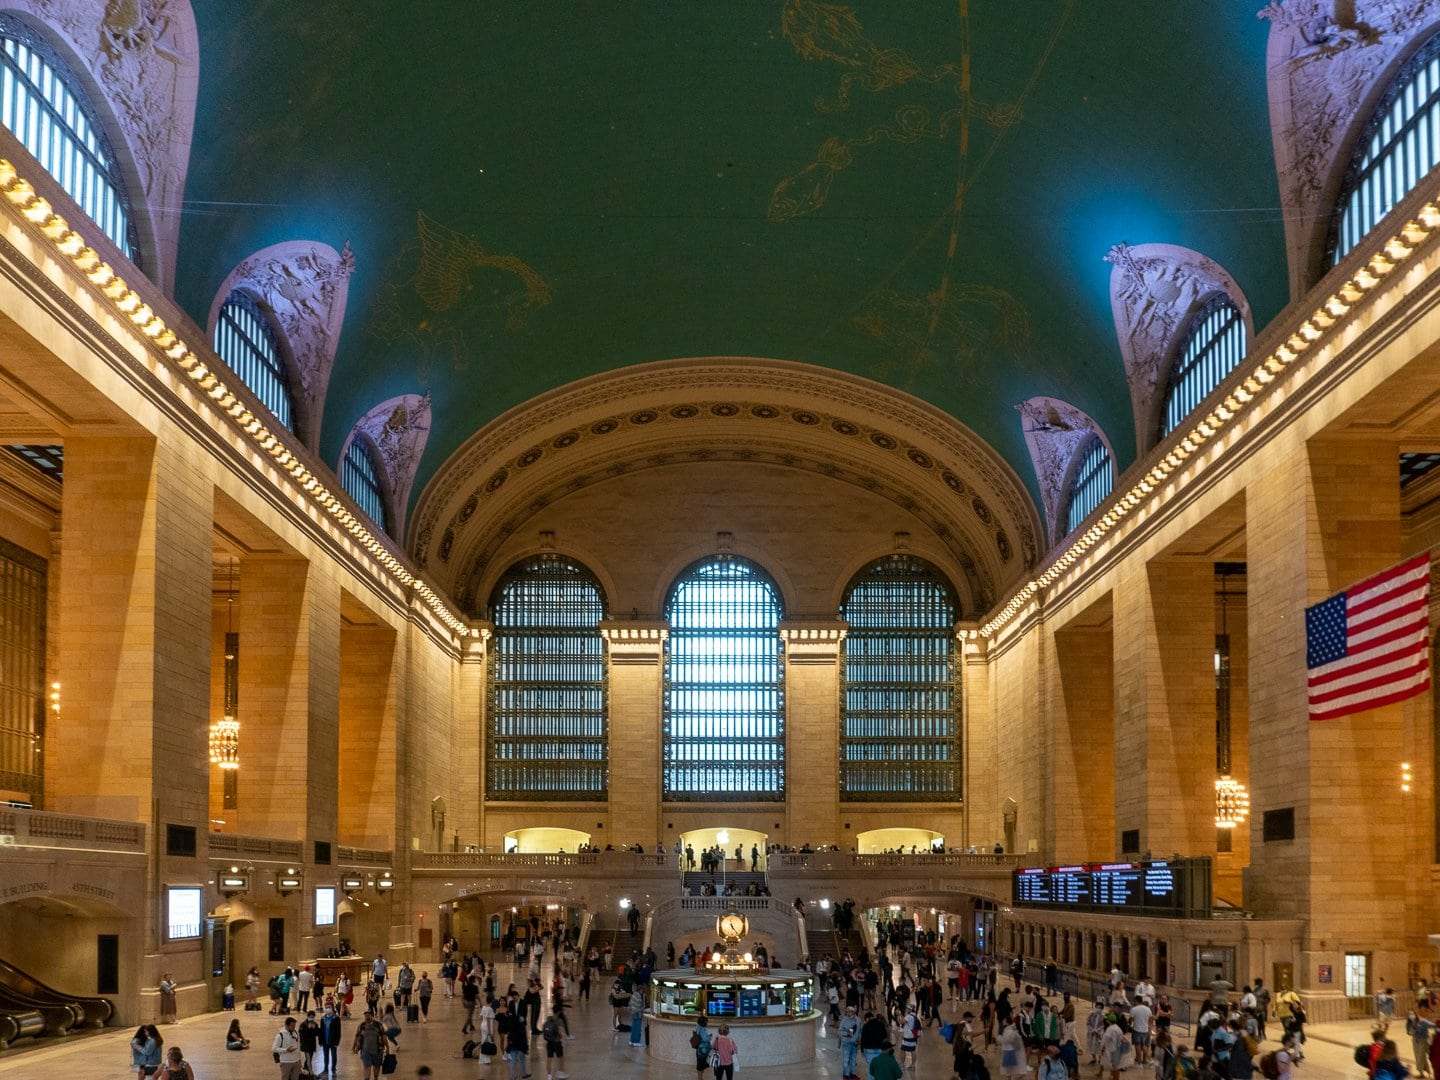 Passengers at Grand Central Terminal New York City